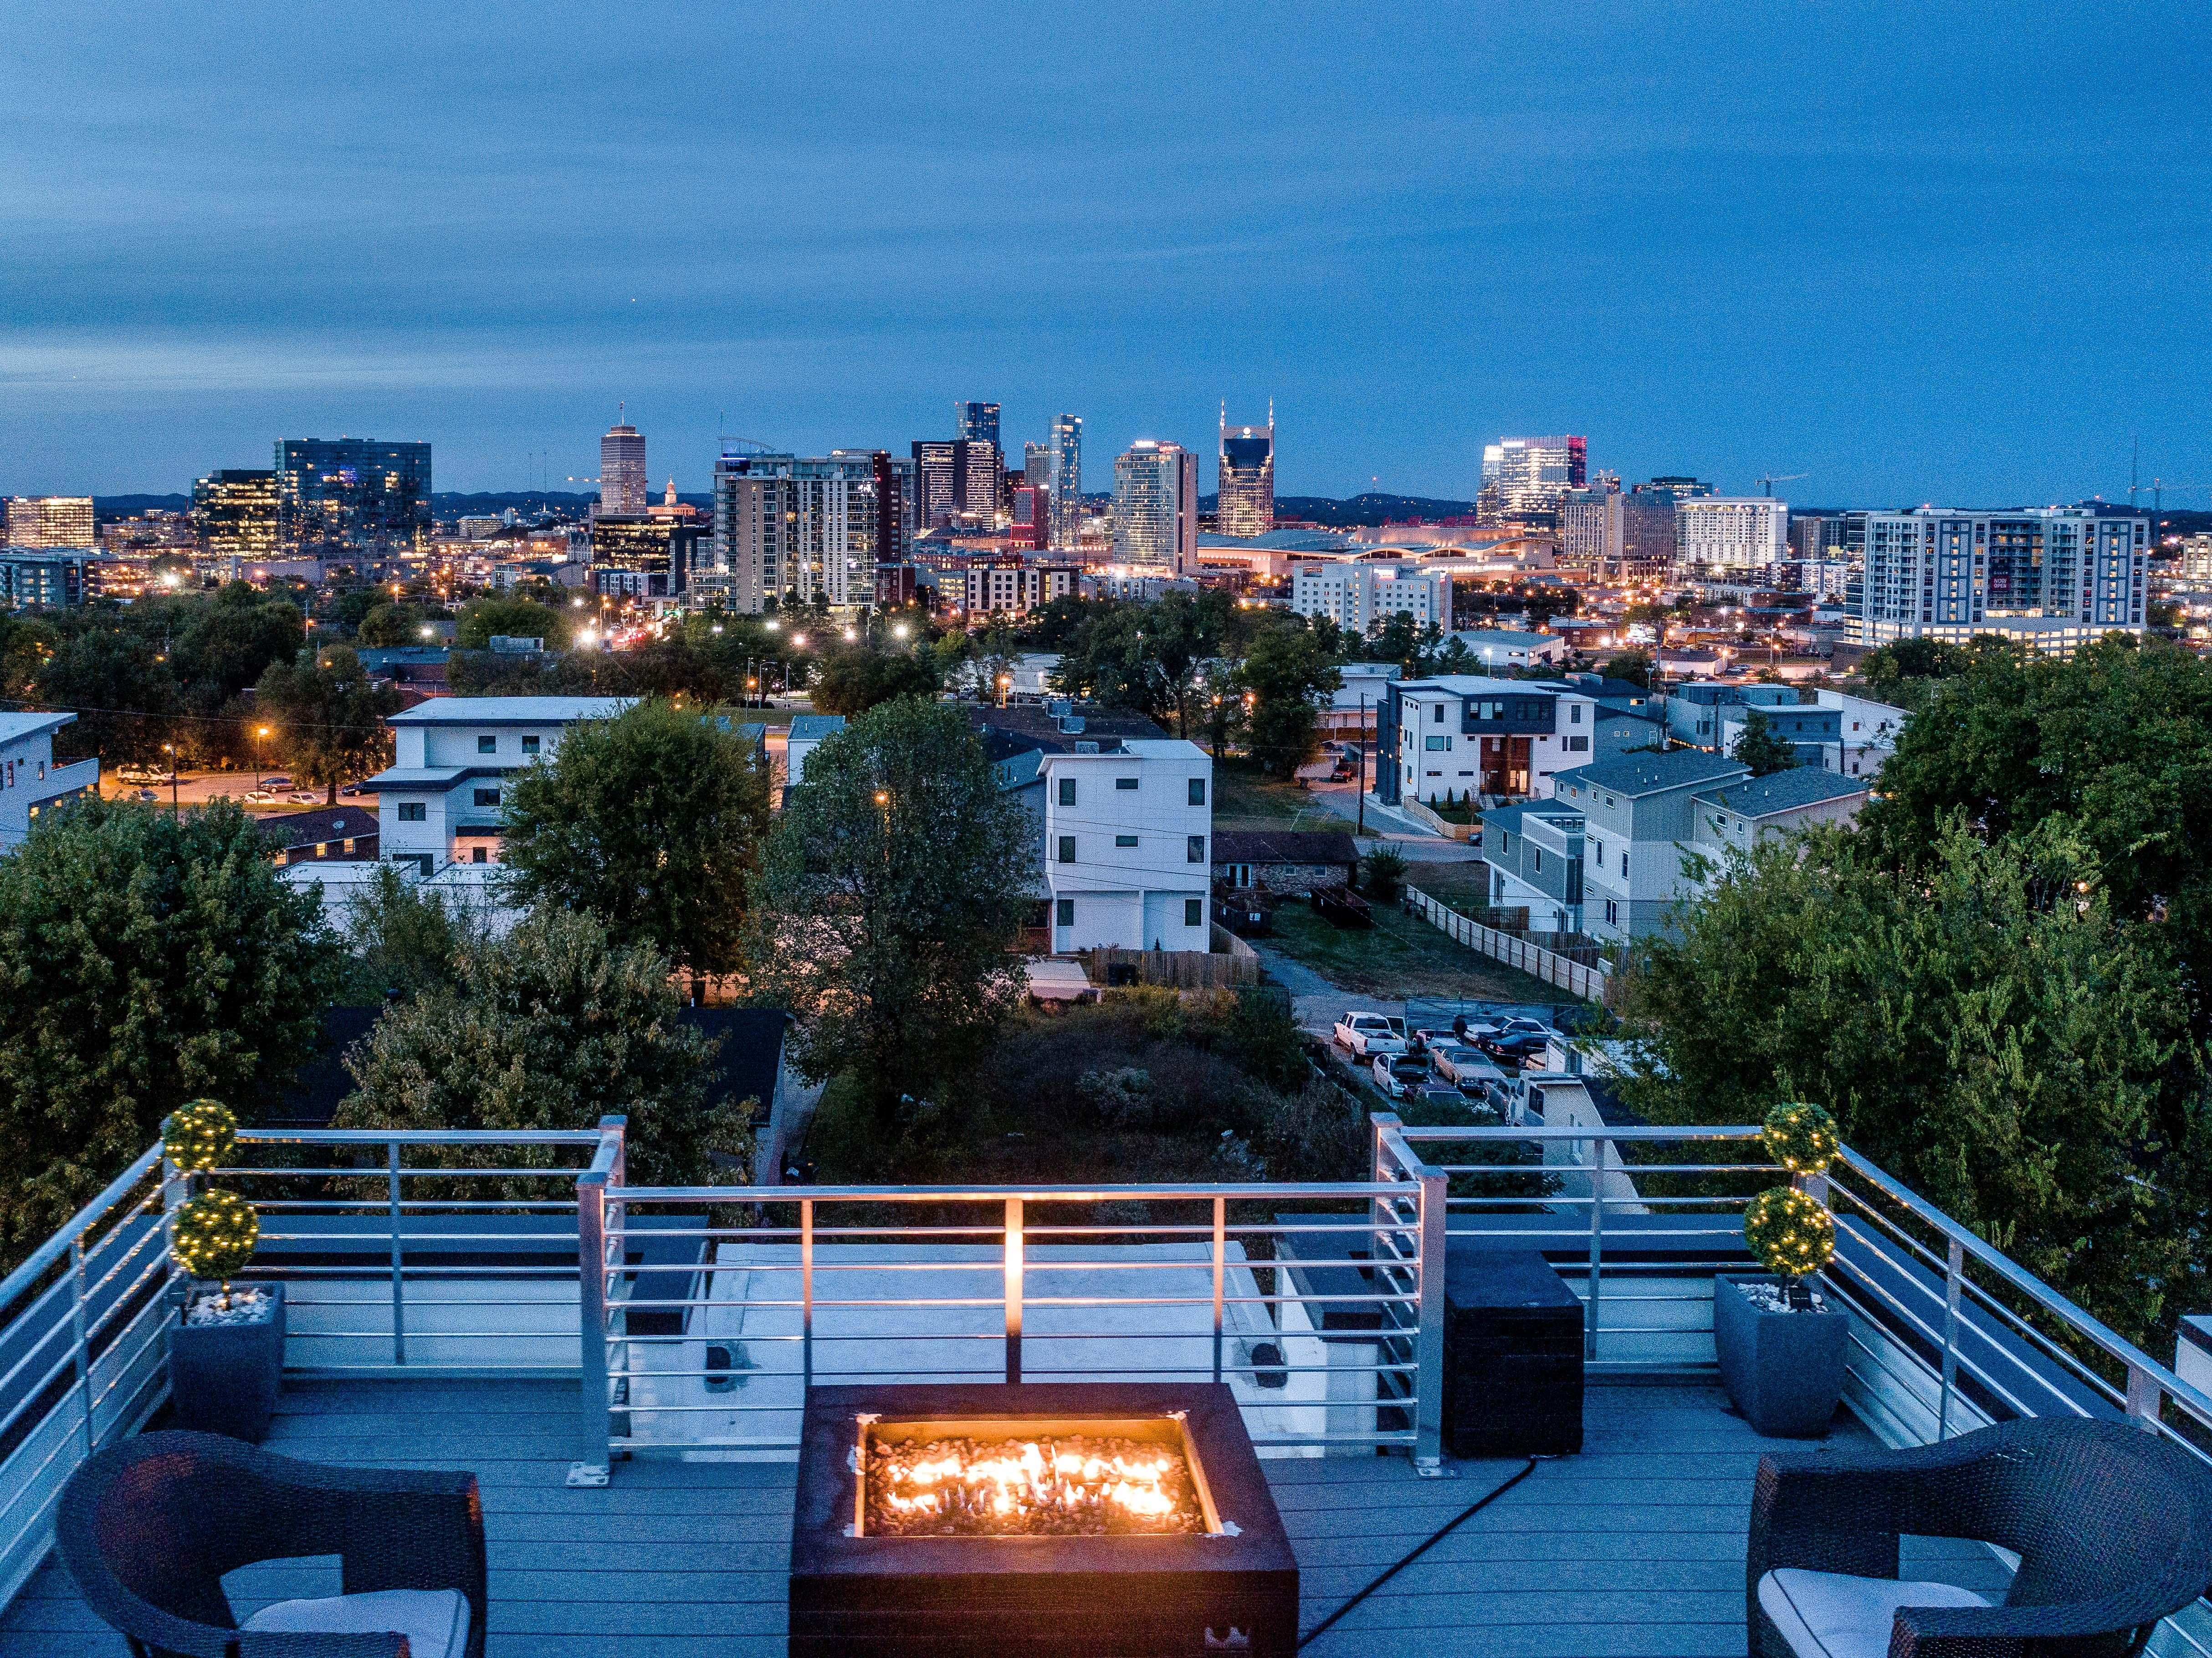 Take in unparalleled views of Music City from the sprawling rooftop deck.